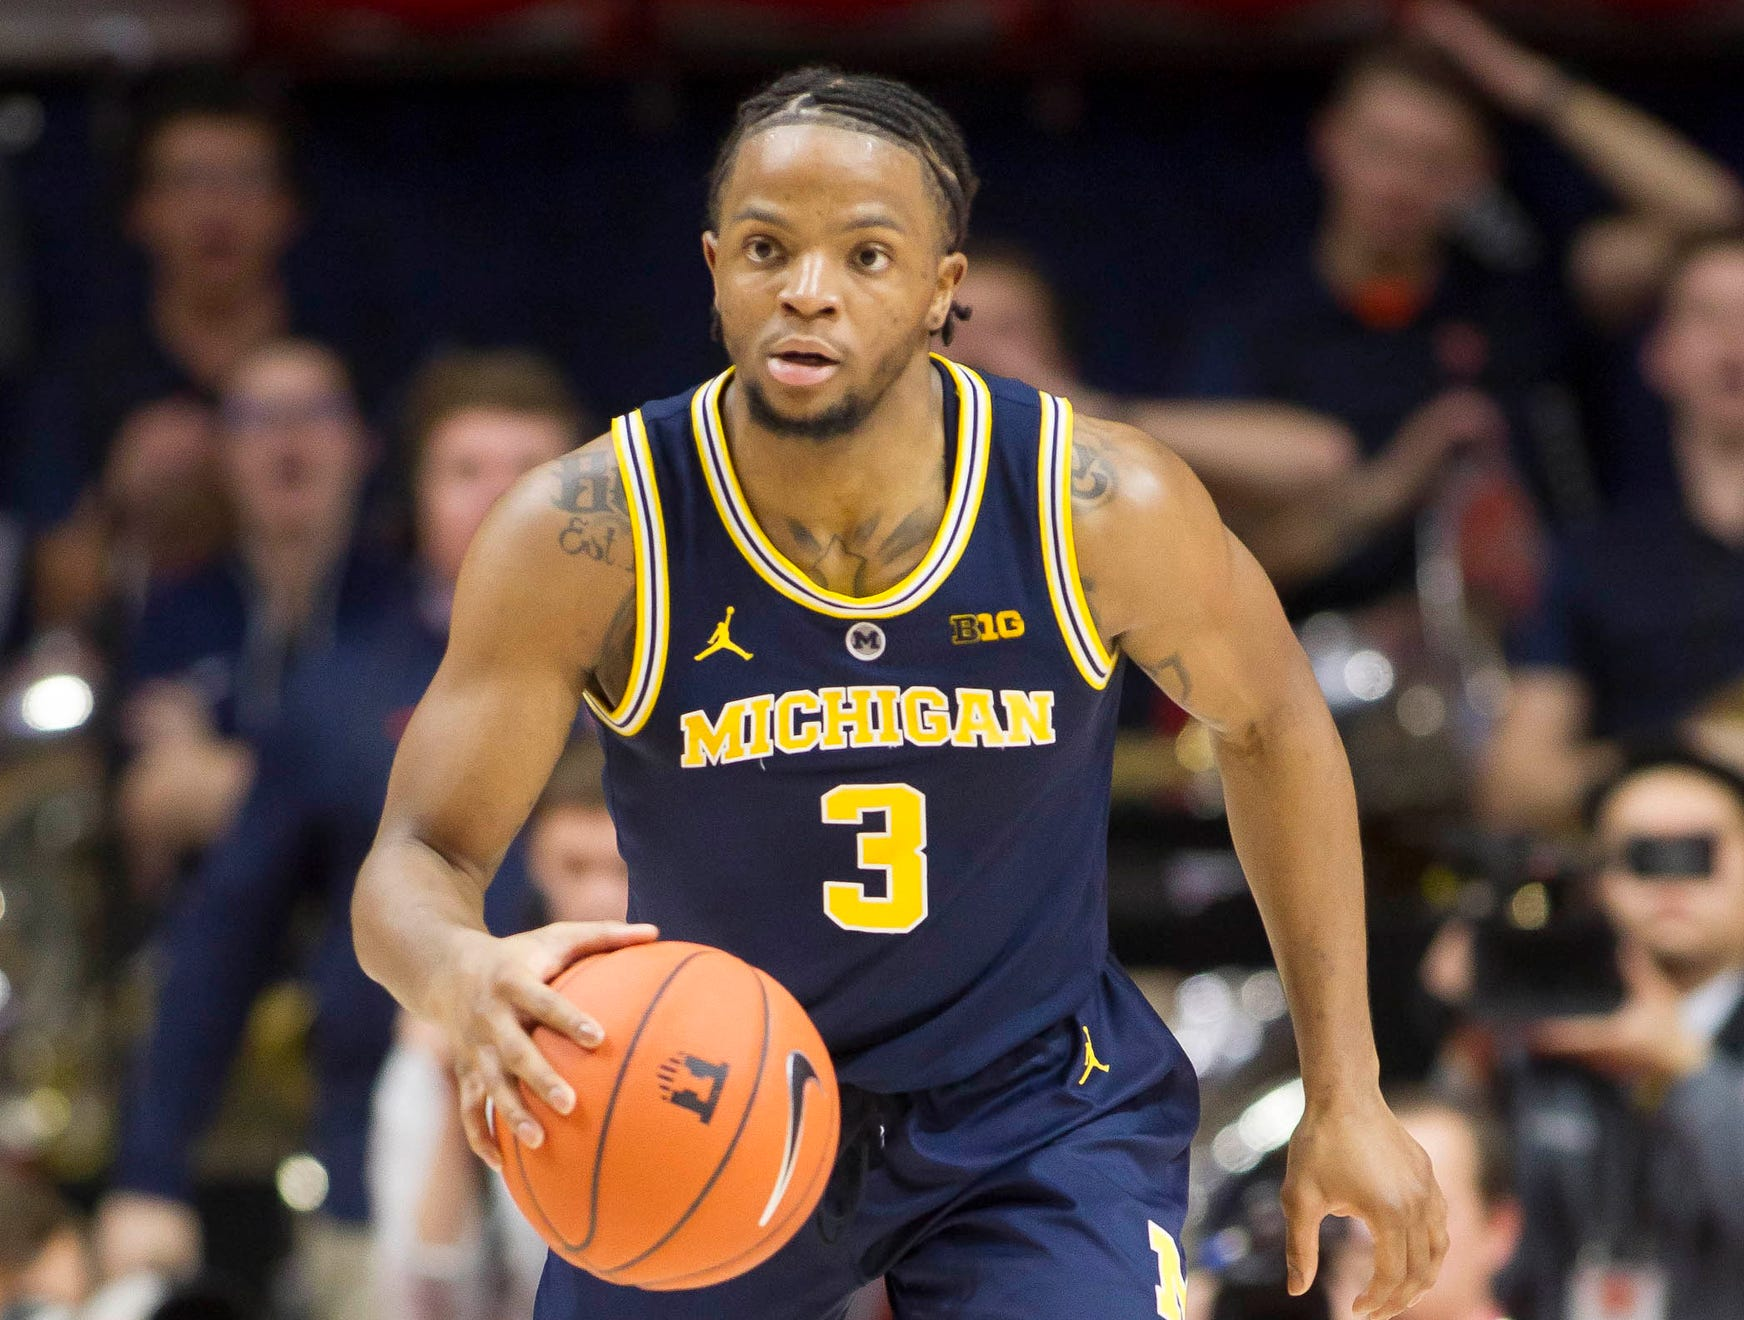 Michigan guard Zavier Simpson brings the ball up the court during the second half of U-M's 79-69 win on Thursday, Jan. 10, 2019, in Champaign, Ill.